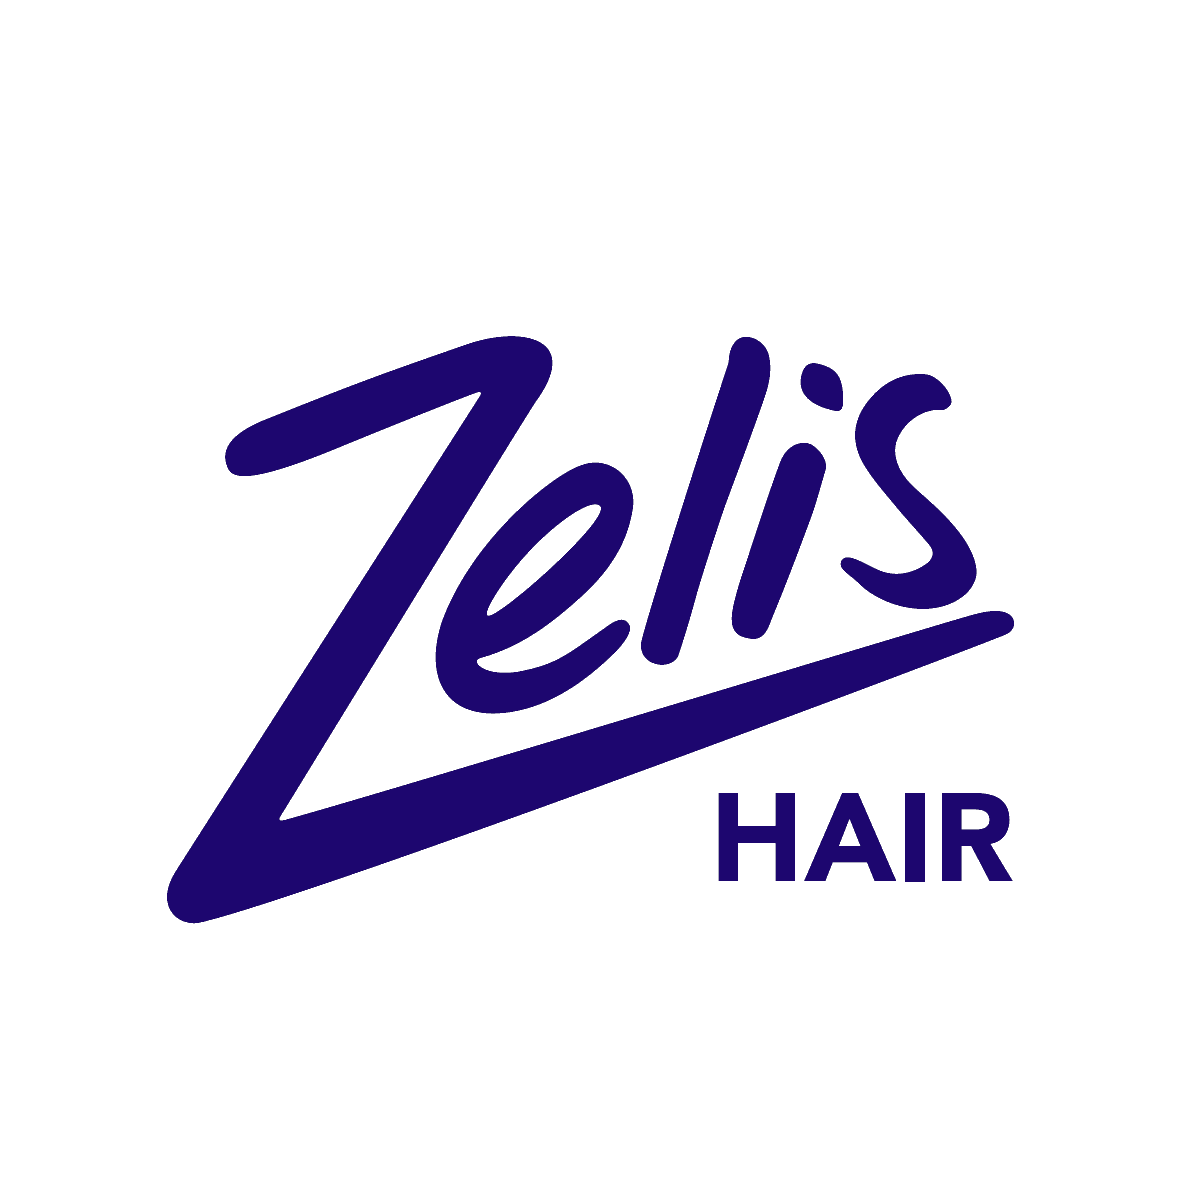 Zelis Hair Logo and Images